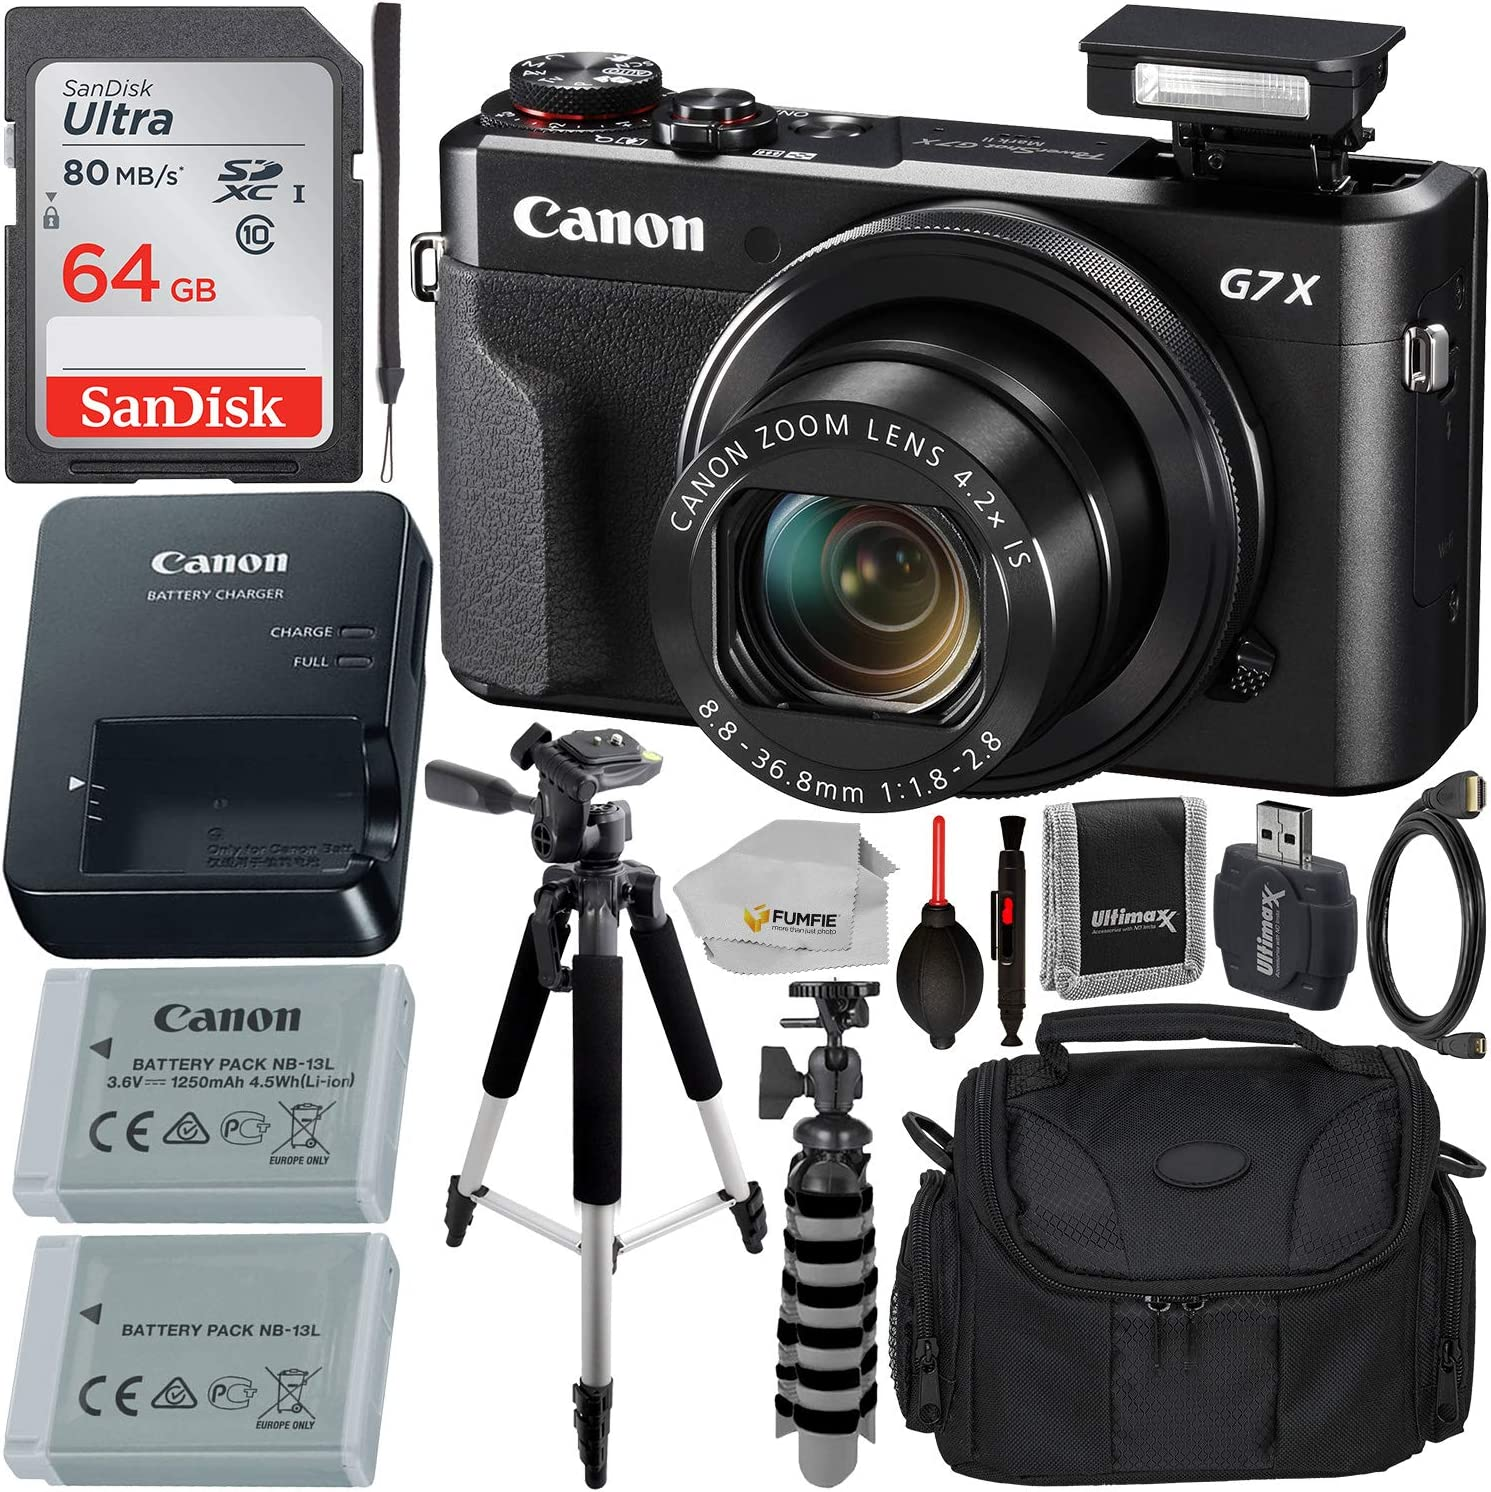 Amazon Com Canon Powershot G7 X Mark Ii Digital Camera Black With Essential Accessory Bundle Includes Sandisk Ultra 64gb Sdxc Memory Card 1x Replacement Battery 57 Tripod Carrying Case More